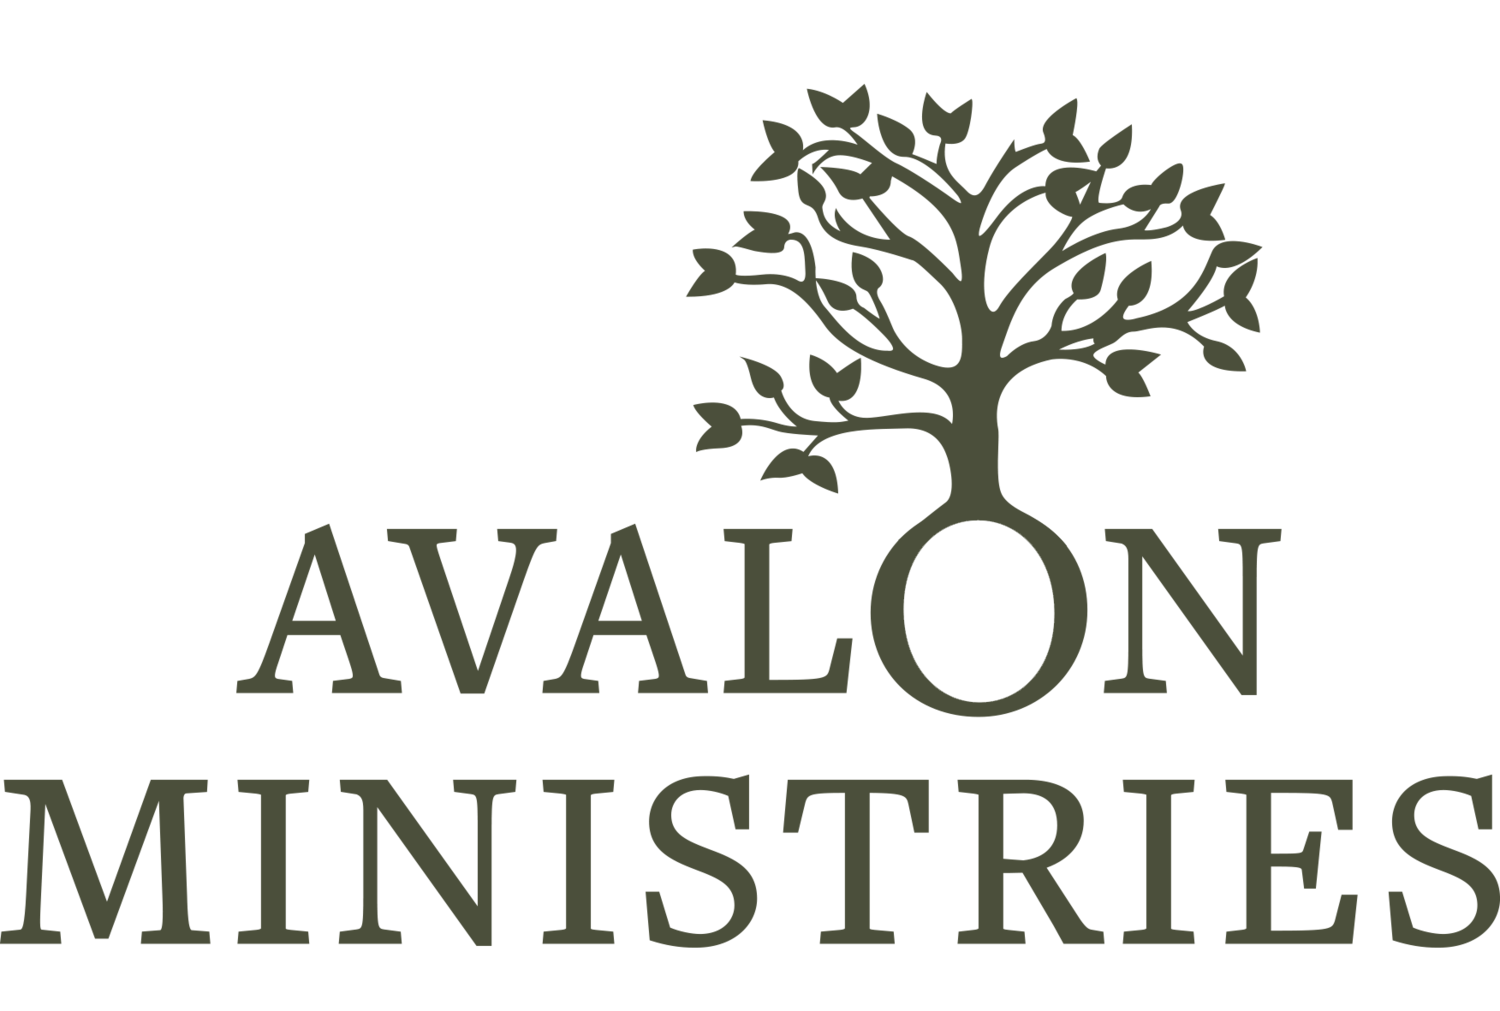 Avalon Ministries